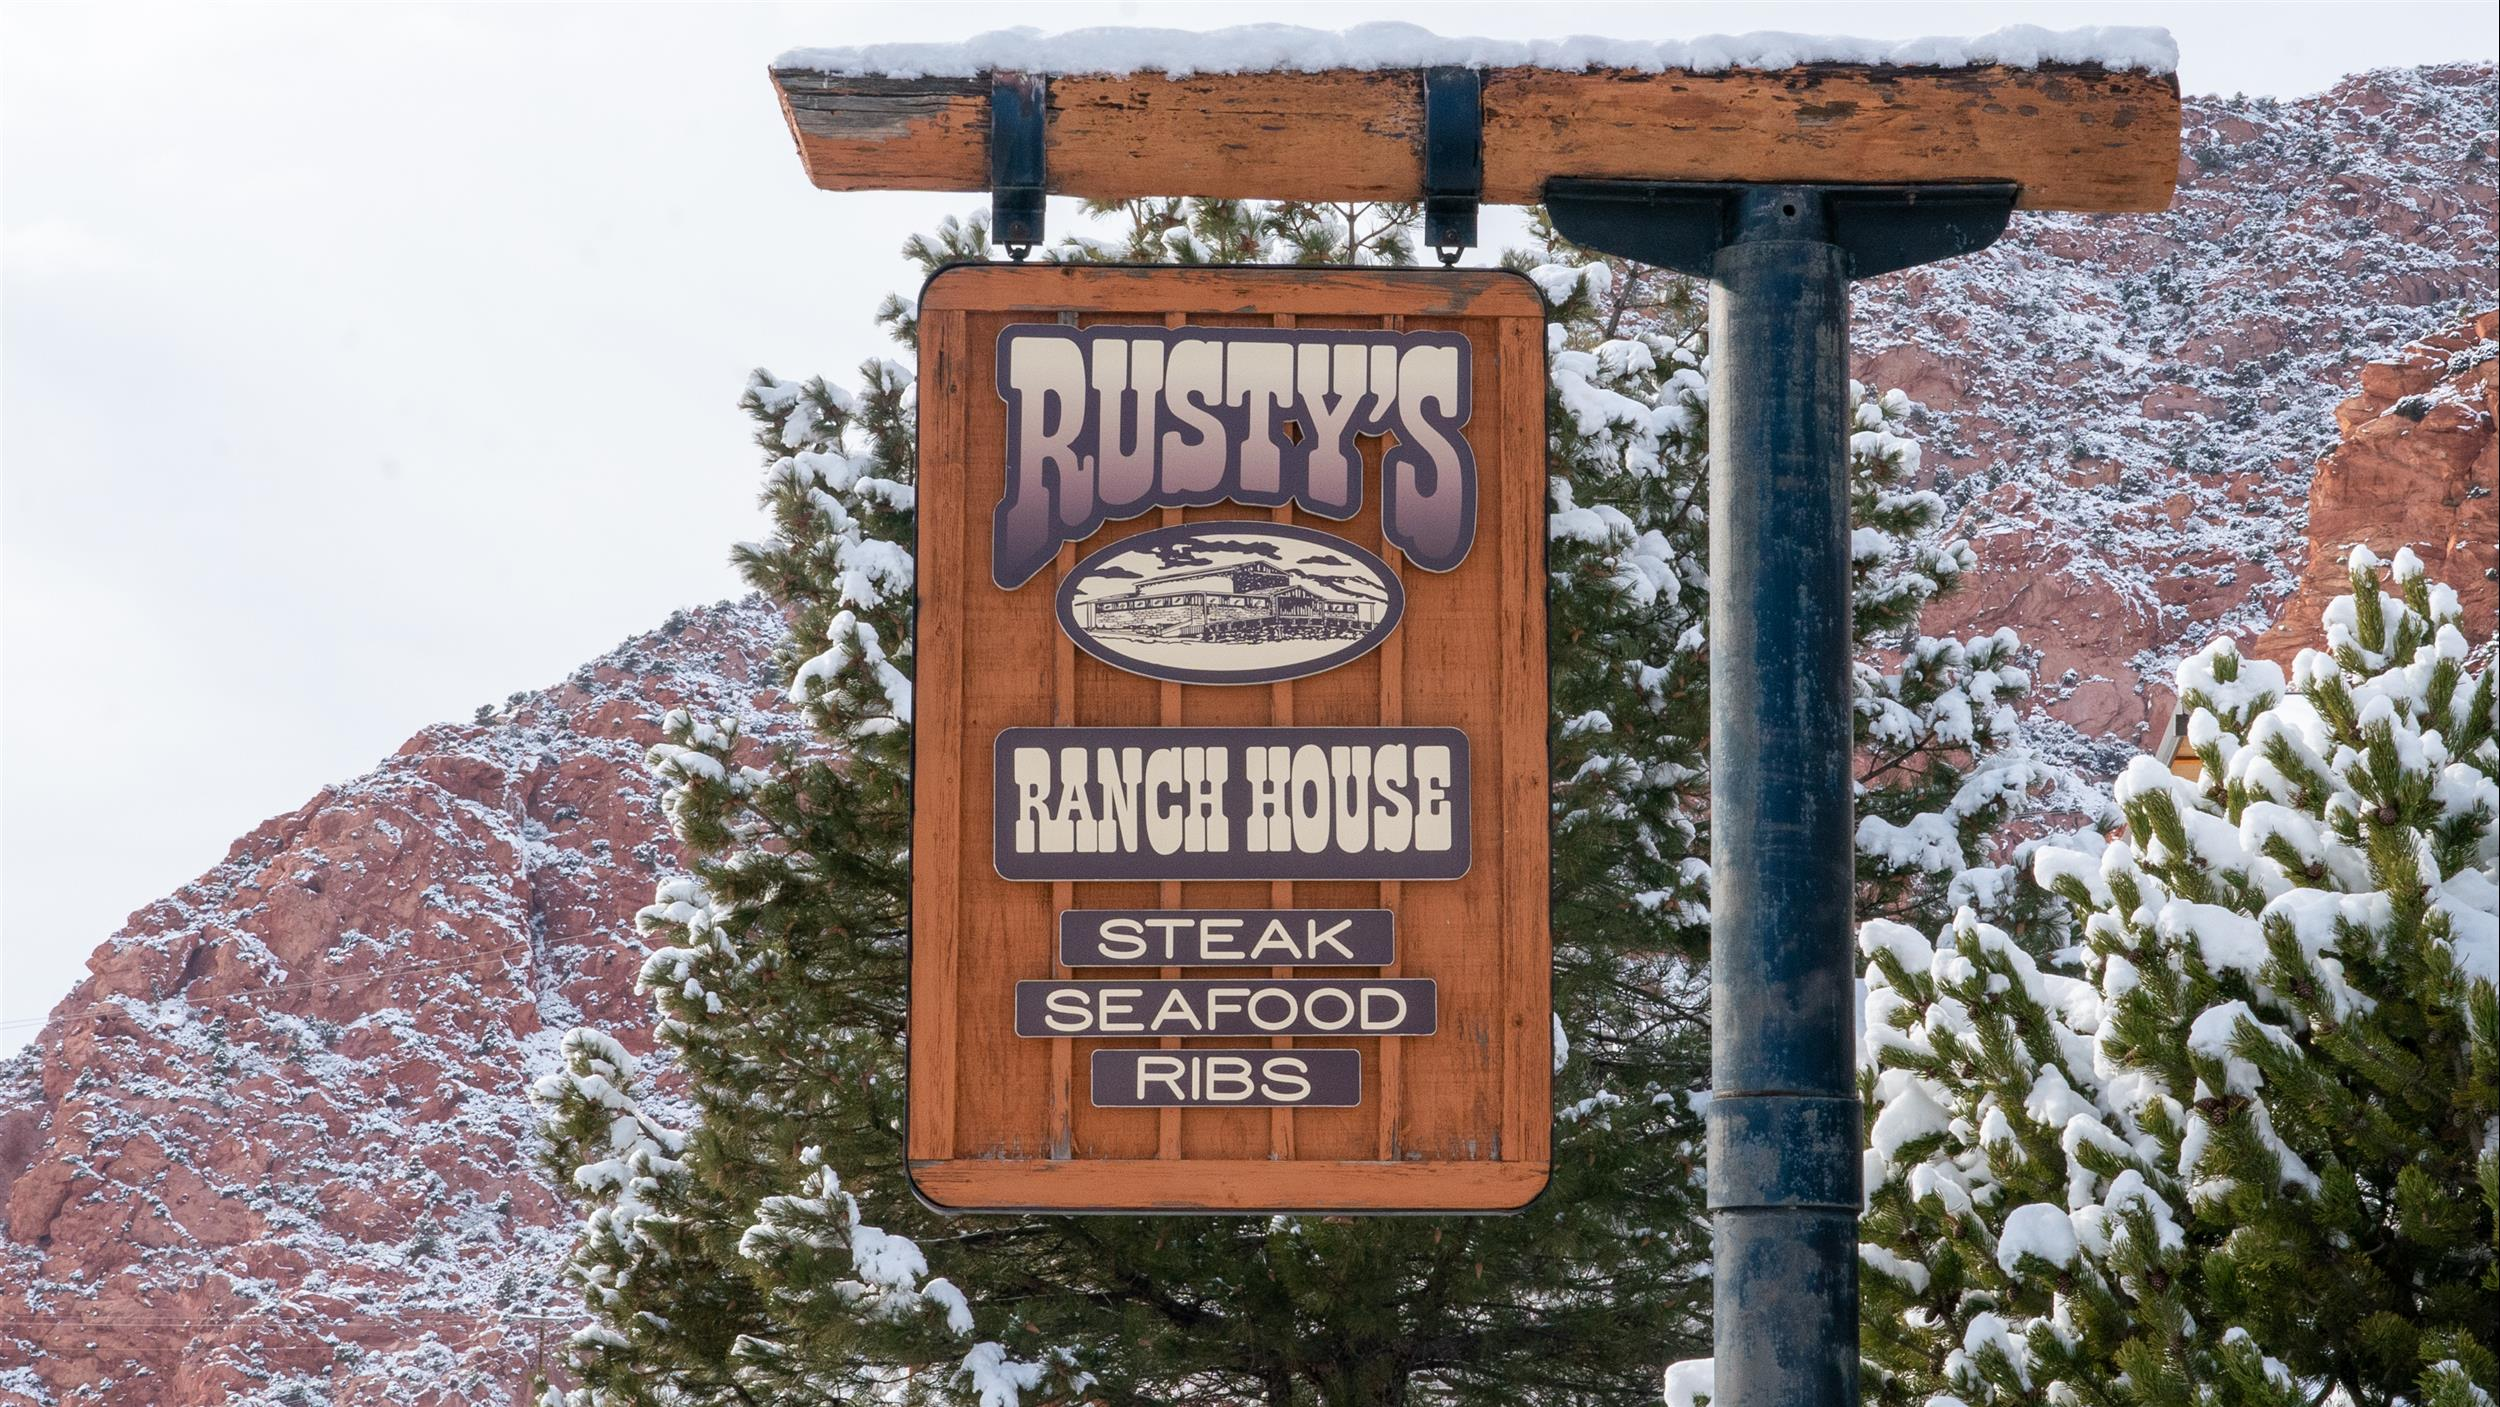 Rusty's Ranch House and Steaks